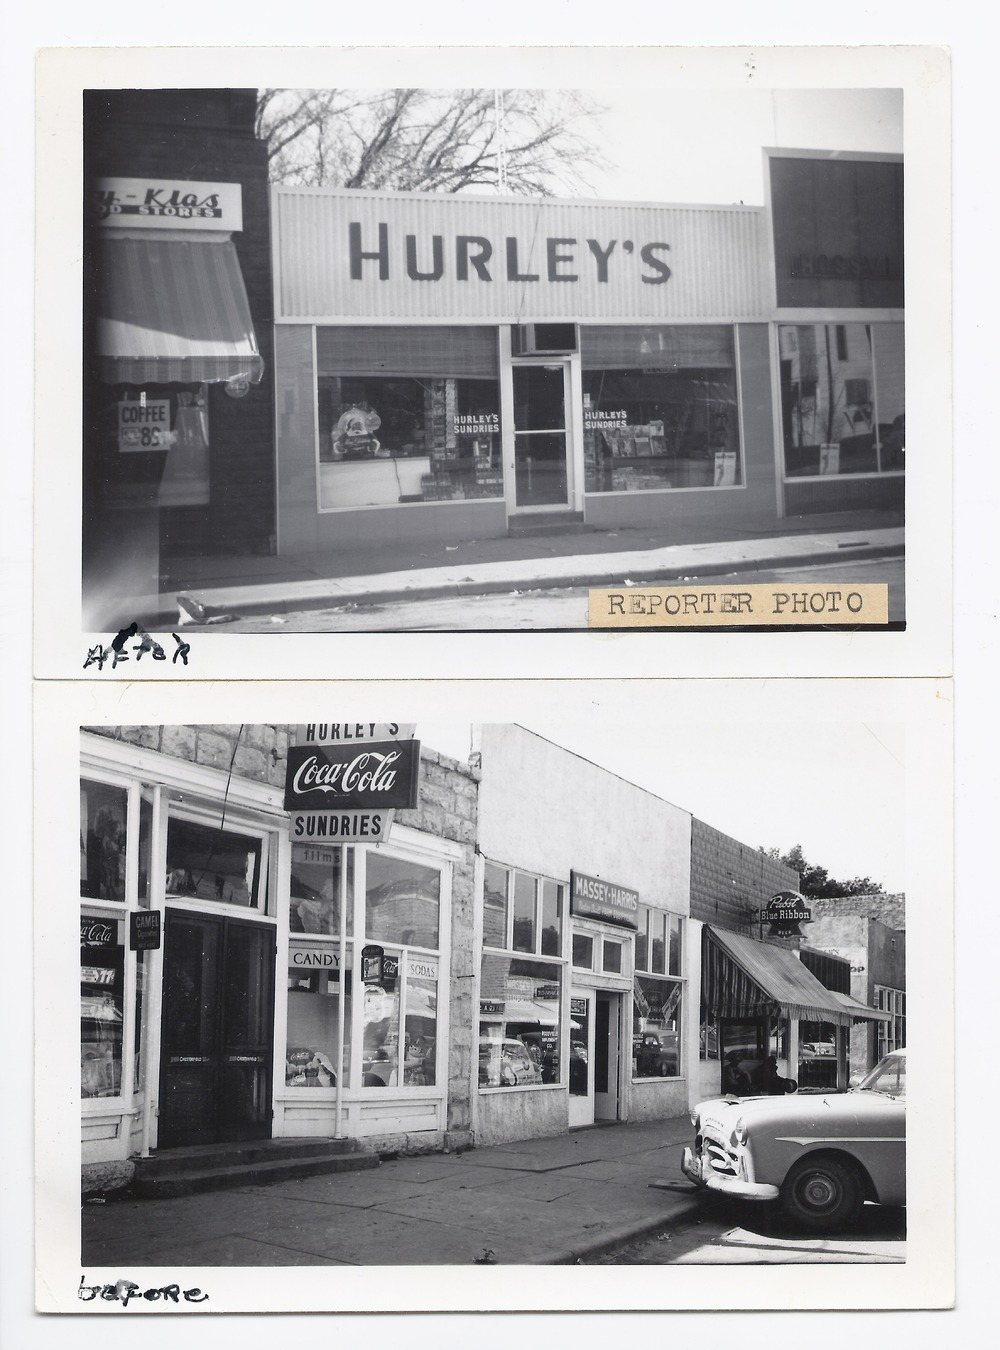 Before and after pictures of Hurley's Sundries store, Rossville, Kansas